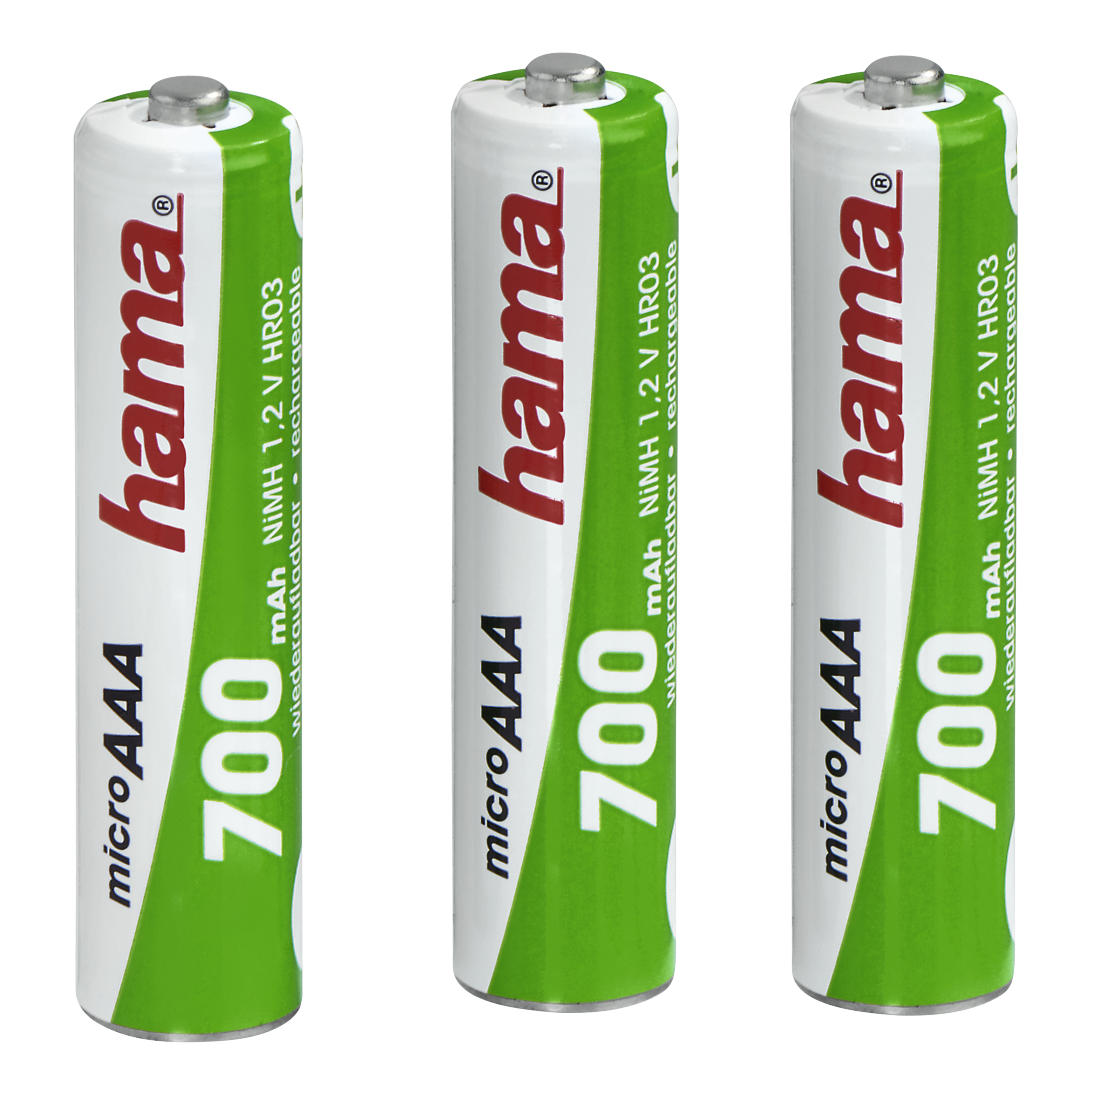 abx High-Res Image - Hama, NiMH Batteries, 3x AAA, 700 mAh, 1.2V